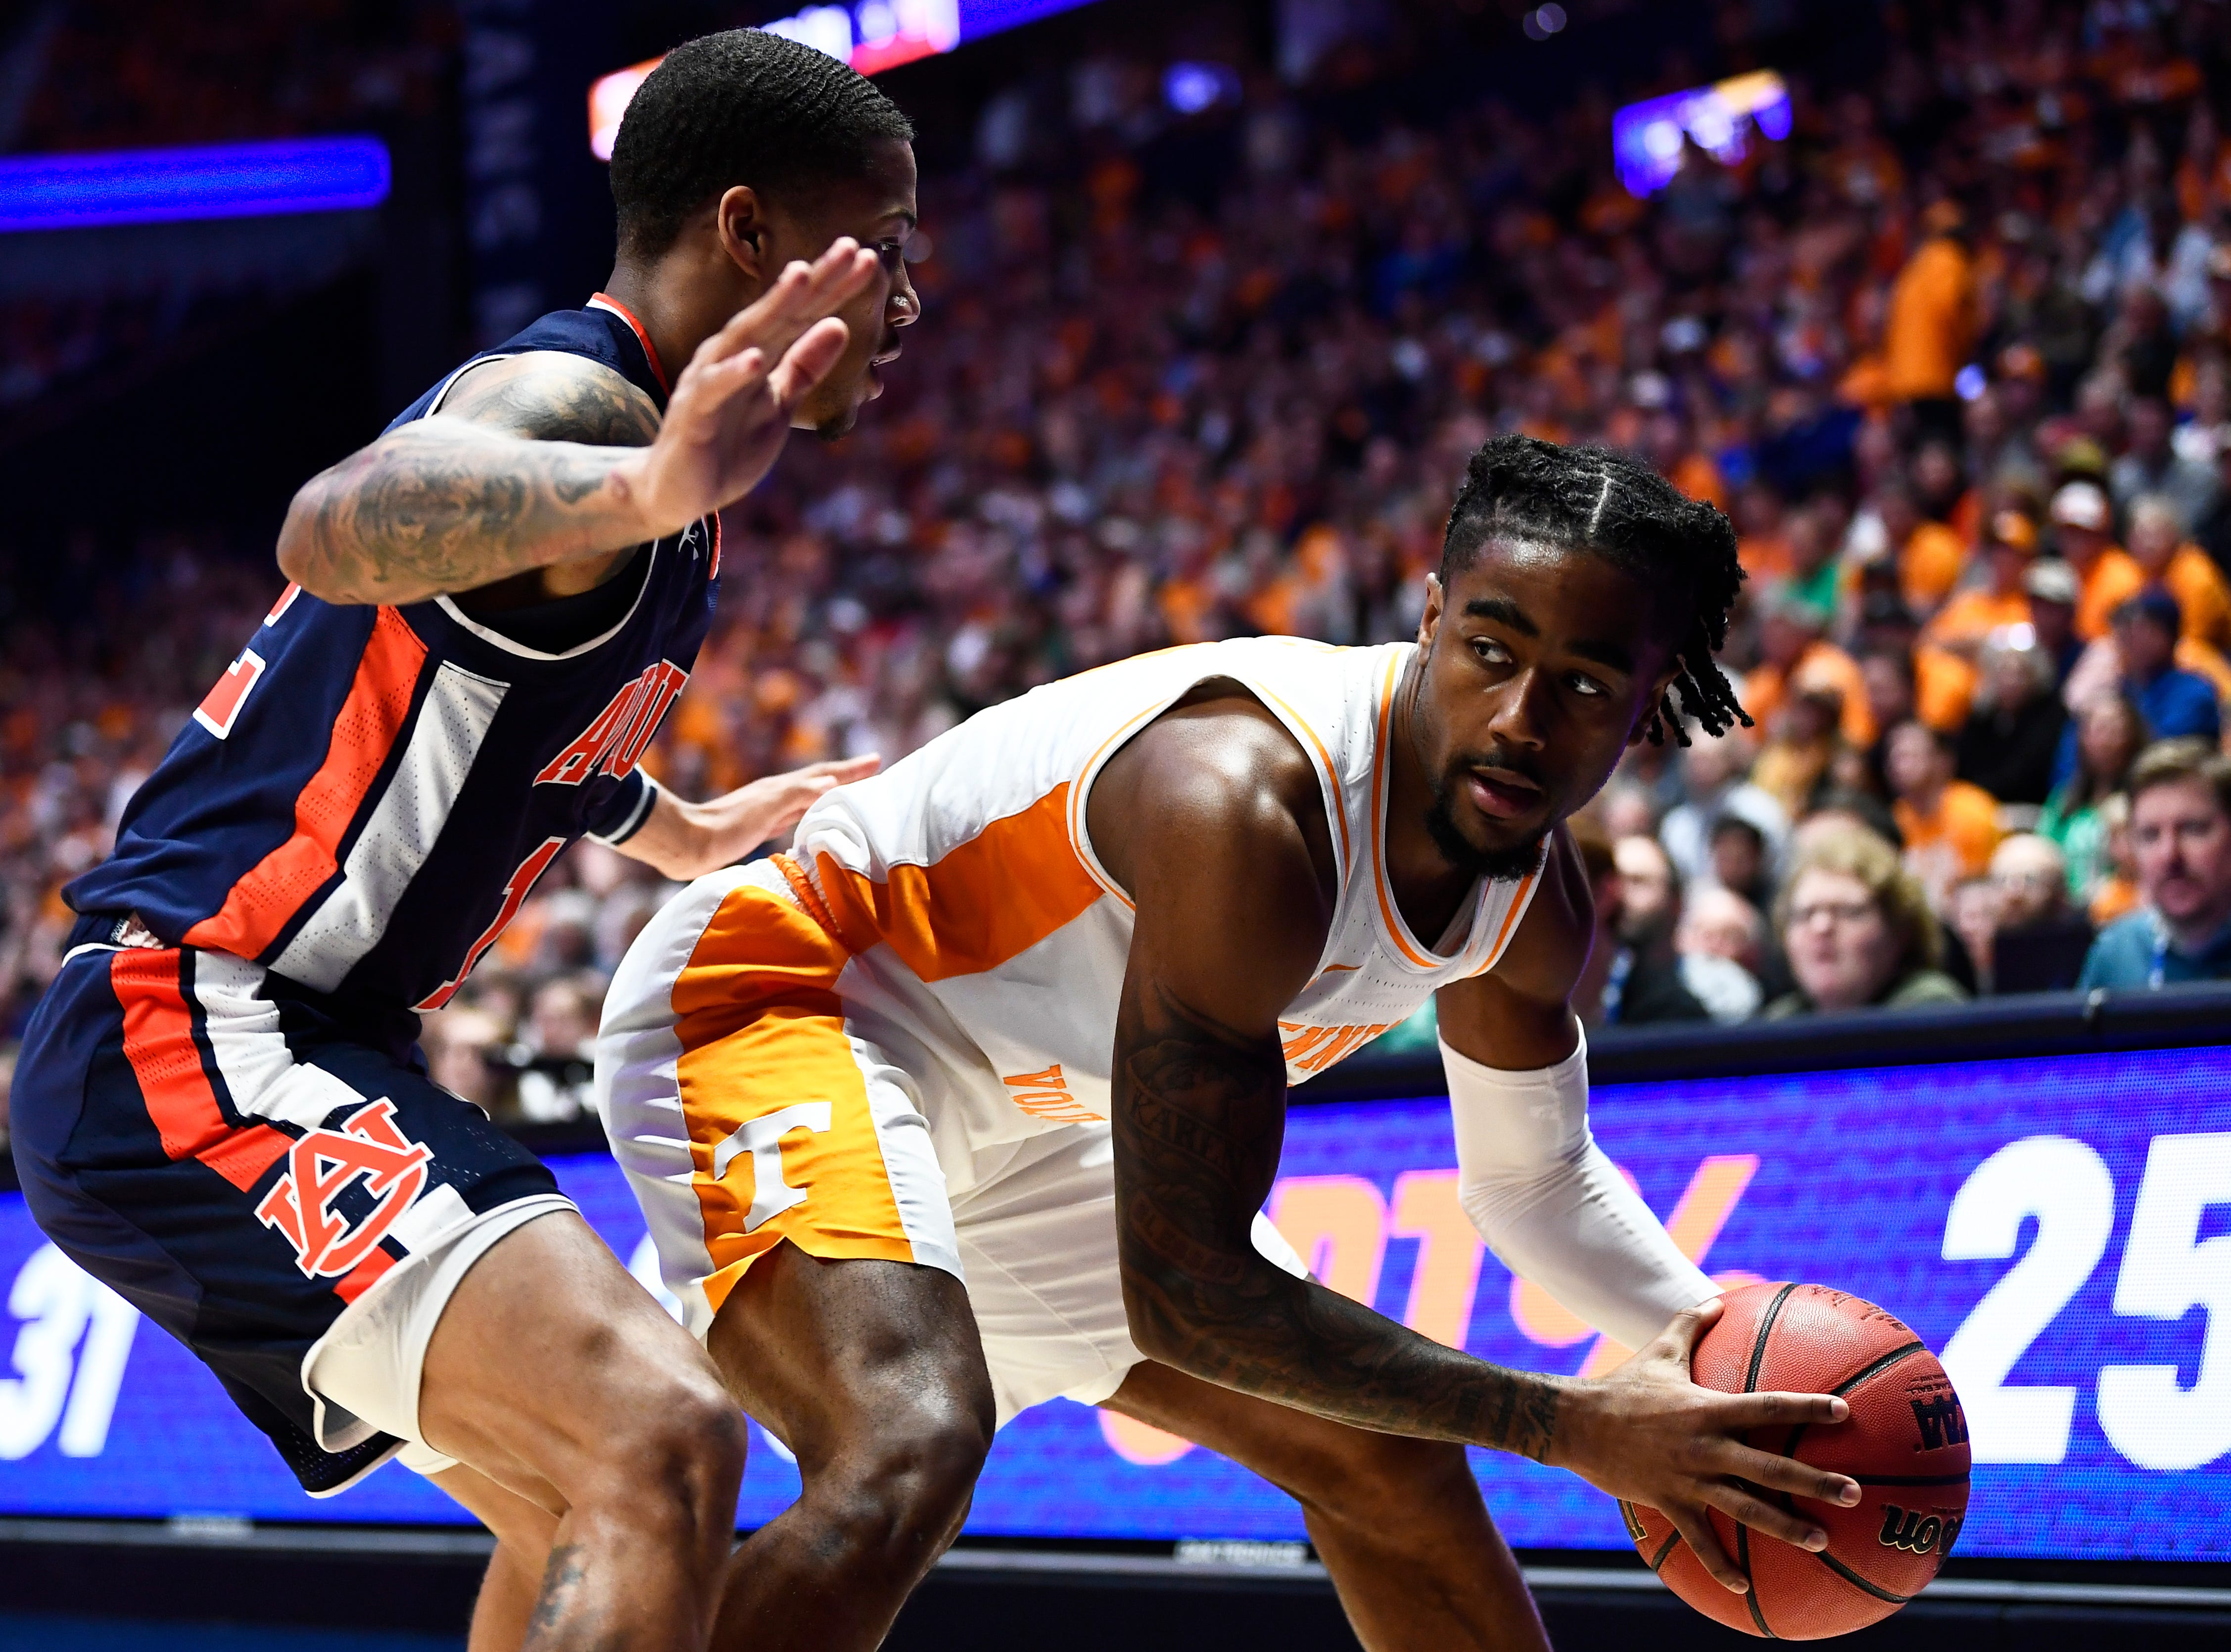 Tennessee guard Jordan Bone is defended by an Auburn player during the first half of the SEC Men's Basketball Tournament championship game at Bridgestone Arena in Nashville, Tenn., Sunday, March 17, 2019.